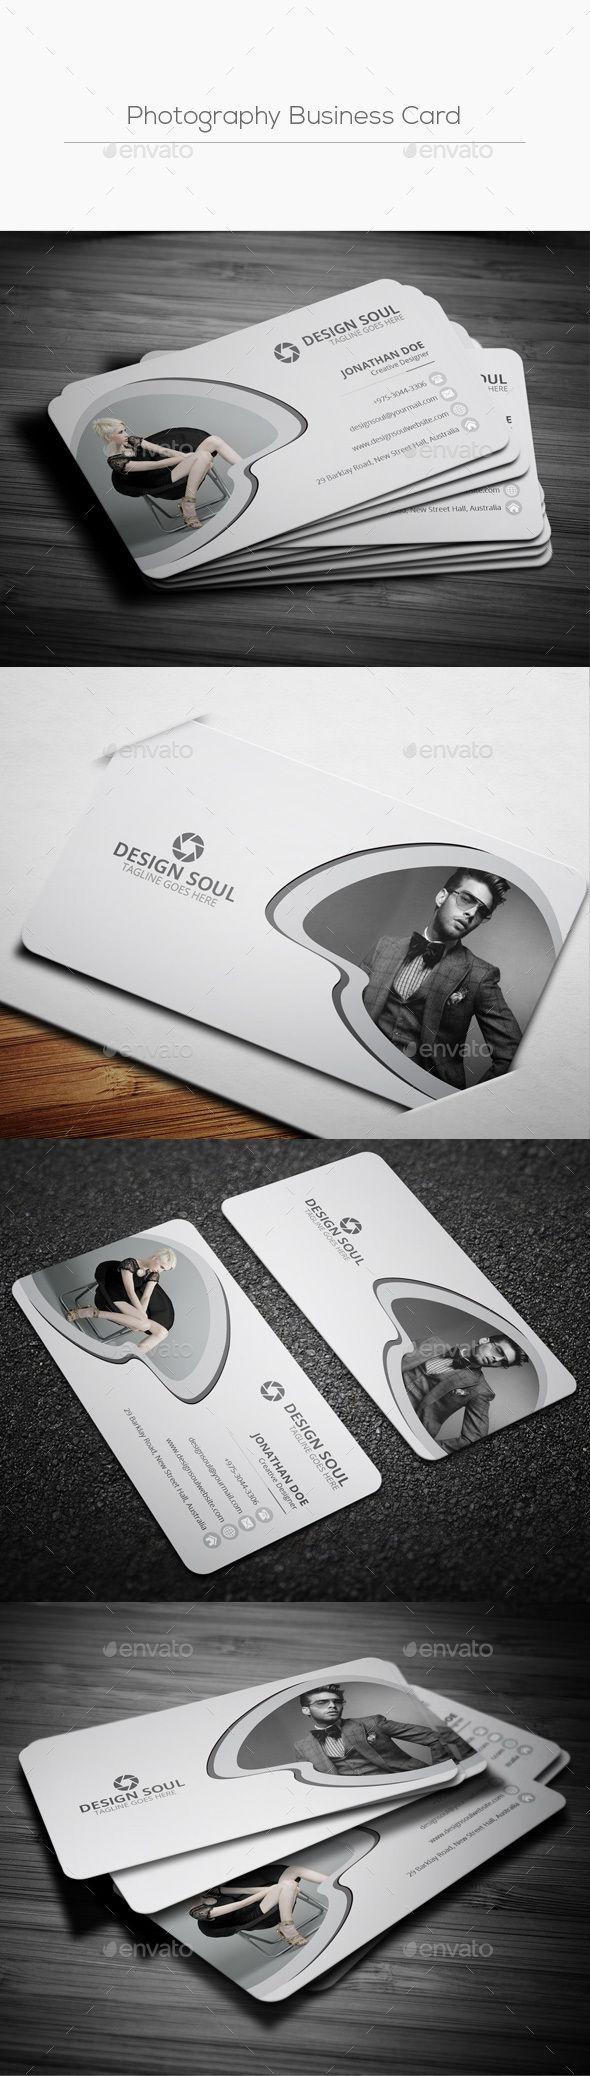 Simple photography business card pinterest cartes de visita simple photography business card template psd download here httpsgraphicriver reheart Gallery